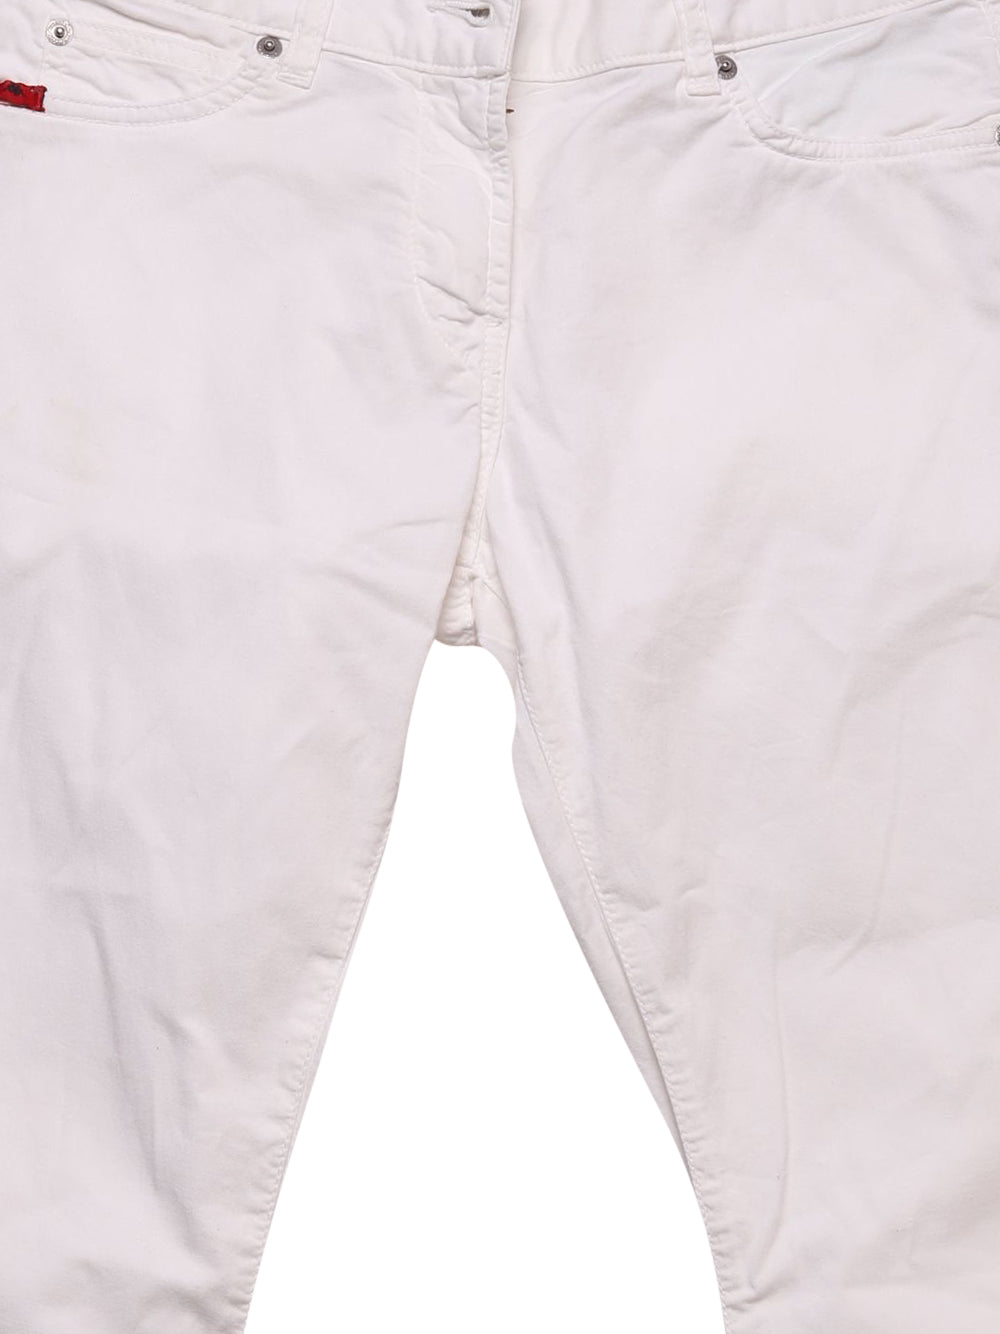 Detail photo of Preloved Kappa White Woman's trousers - size 10/M